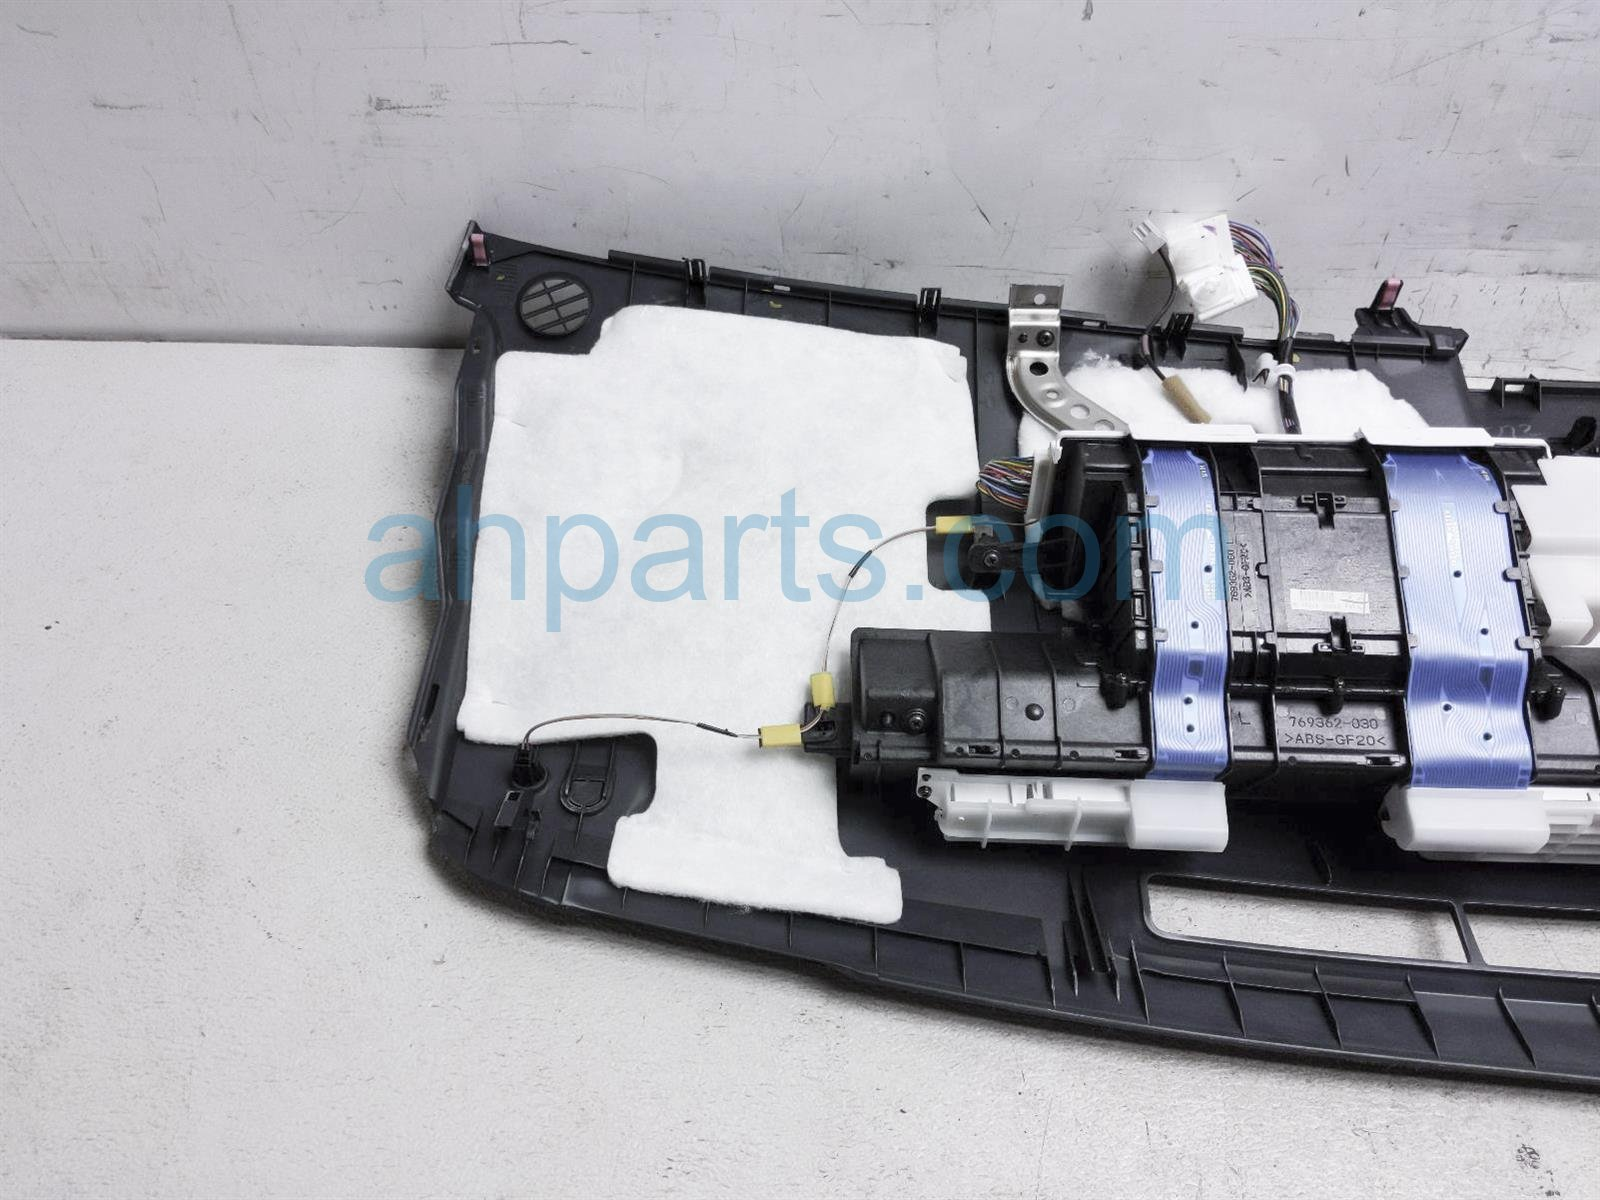 2009 Toyota Prius Dashboard W/ Airbag   Black 55300 47030 C0 Replacement